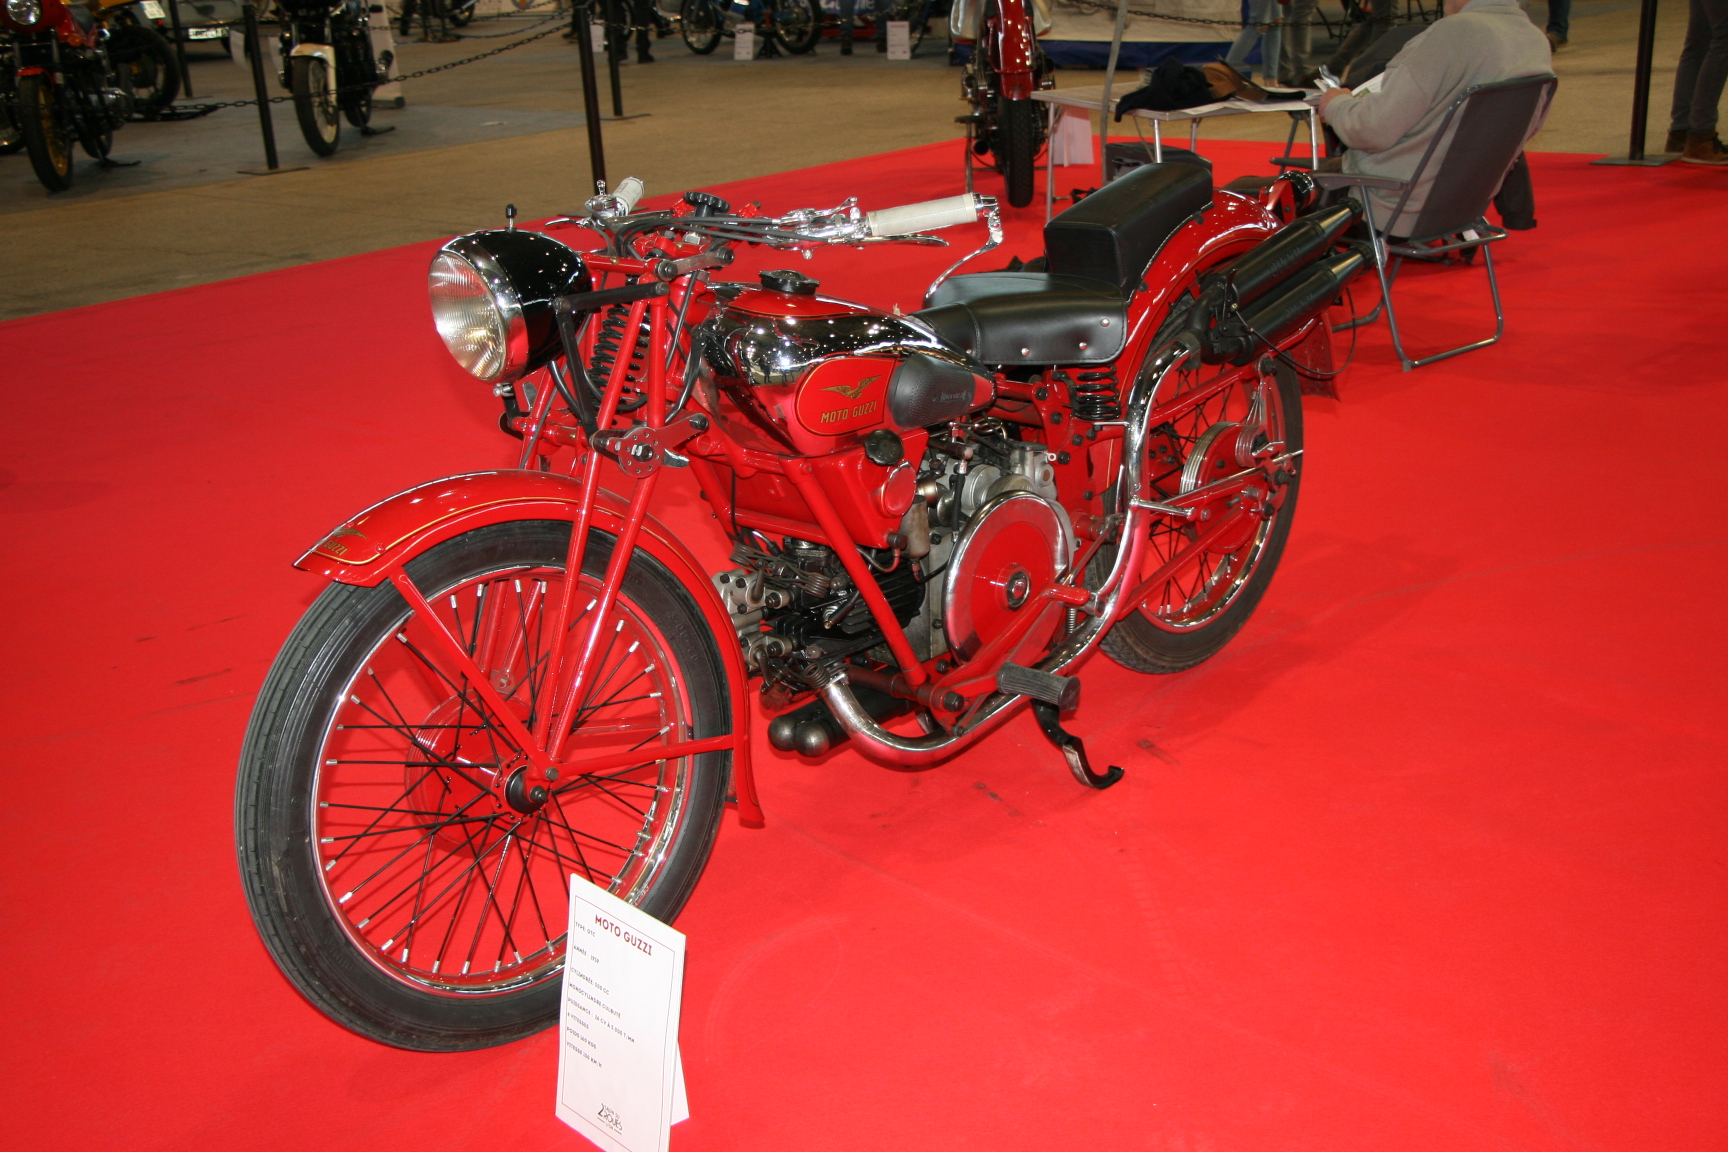 Salon lyon motobel